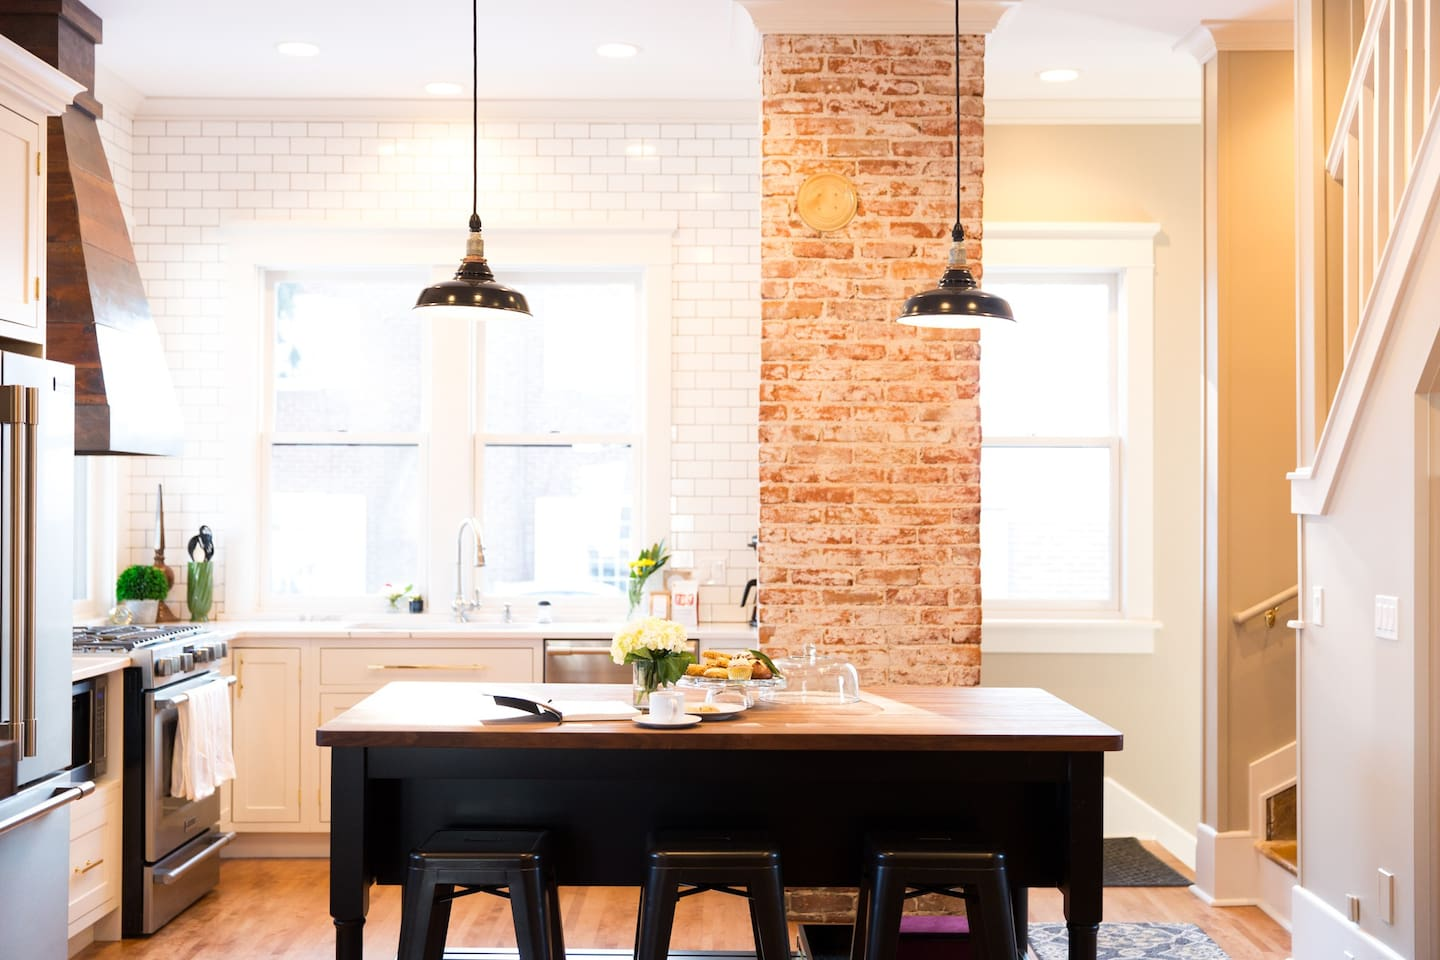 Bright and inviting kitchen with original chimney.